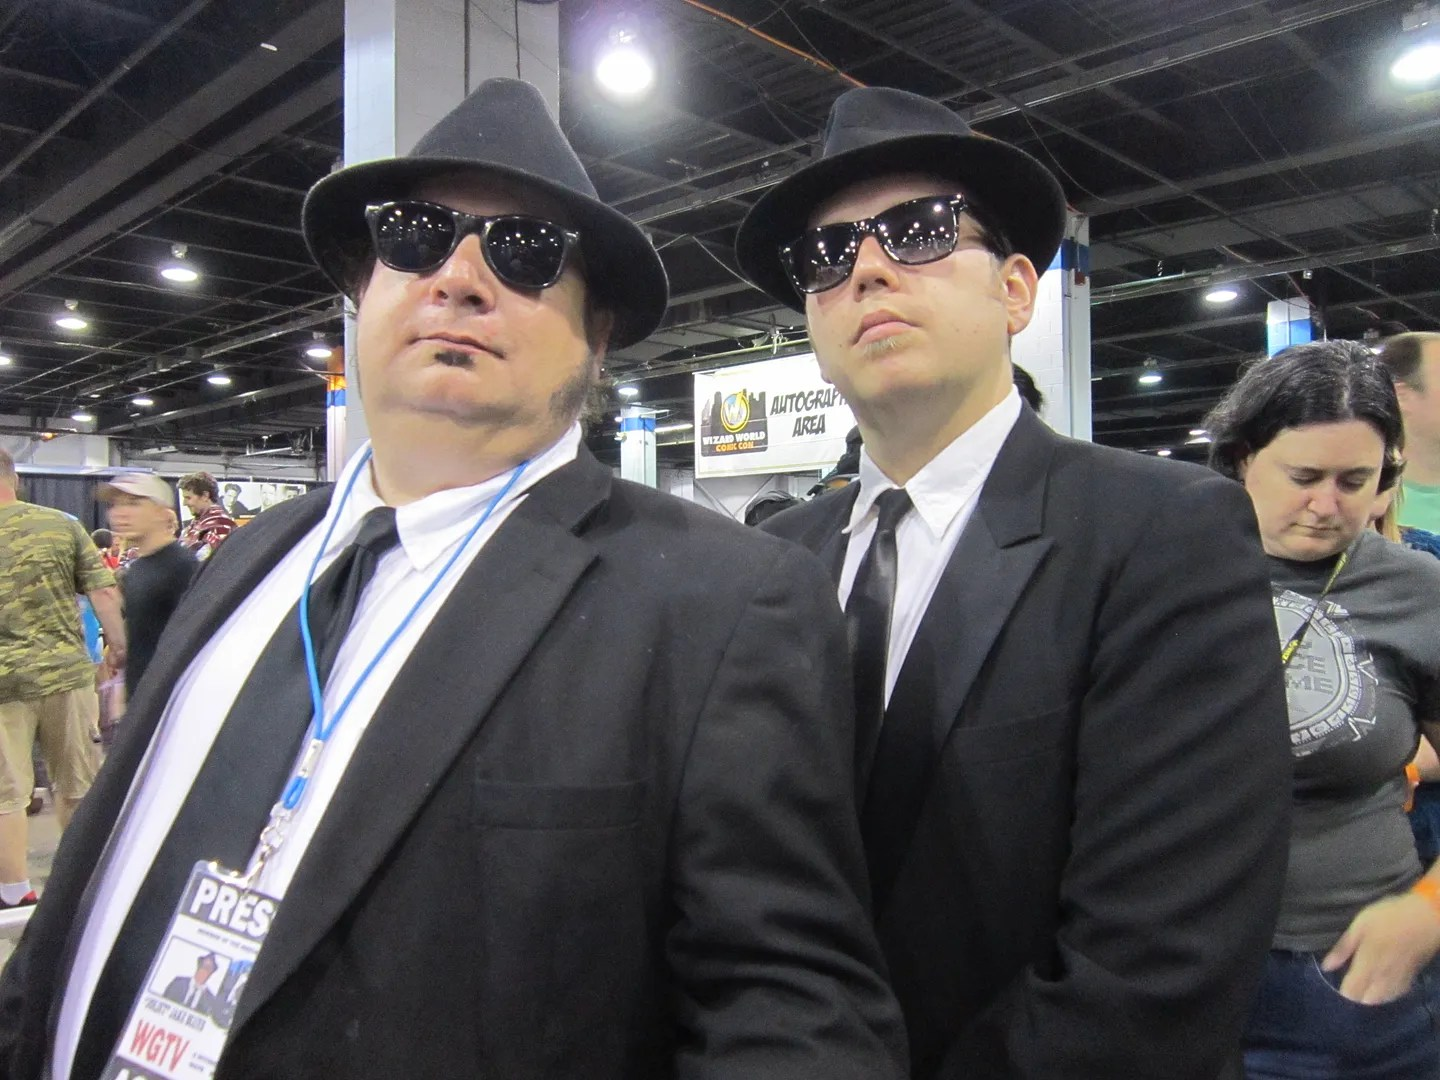 Blues Brothers, Wizard World Chicago 2013